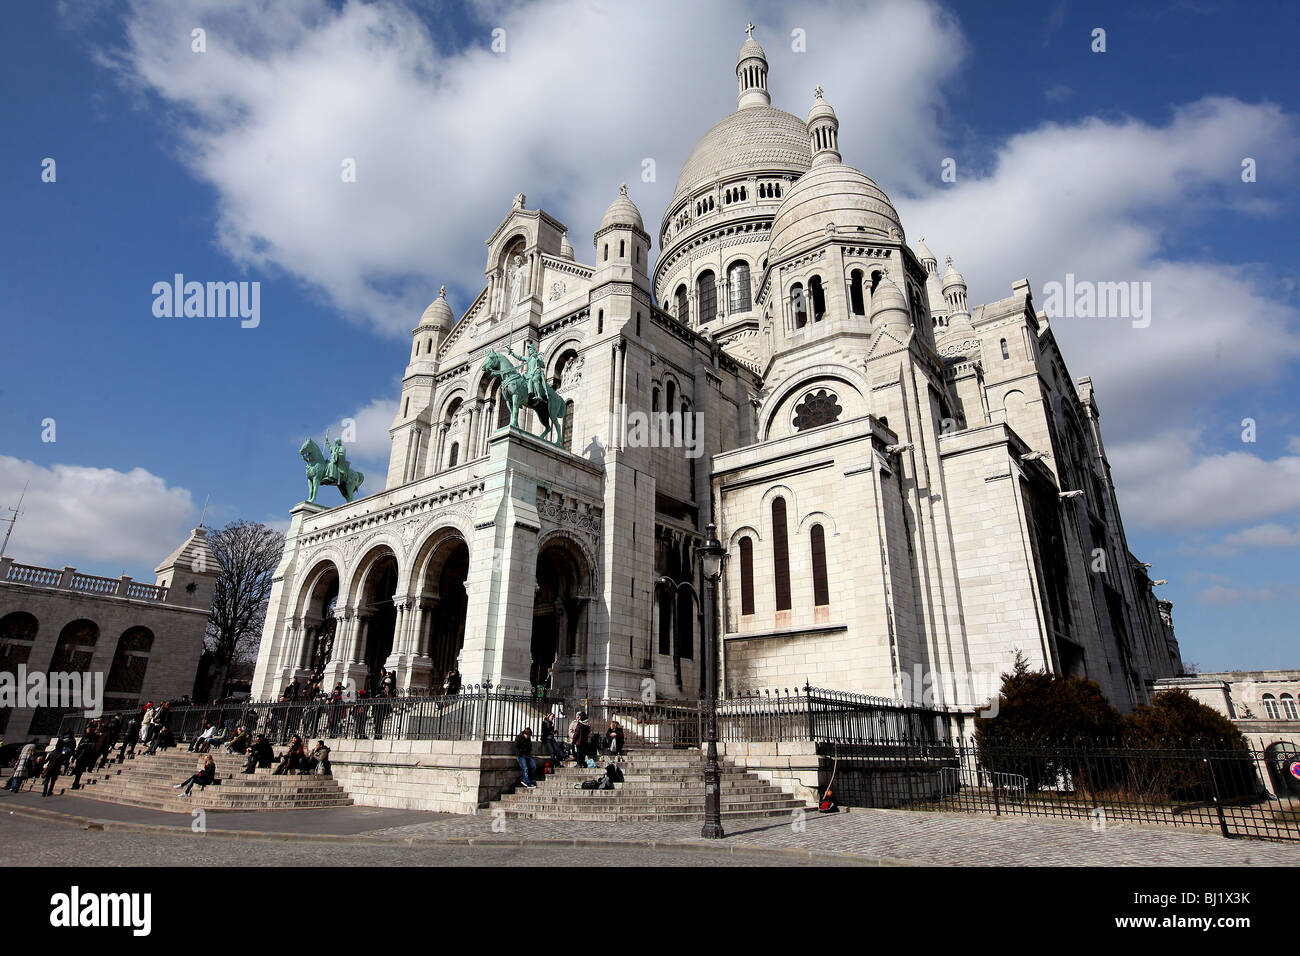 Pic by Mark Passmore/www.markpassmore.com GV of the Basilica of the Sacred Heart of Jesus of Paris, known as the - Stock Image